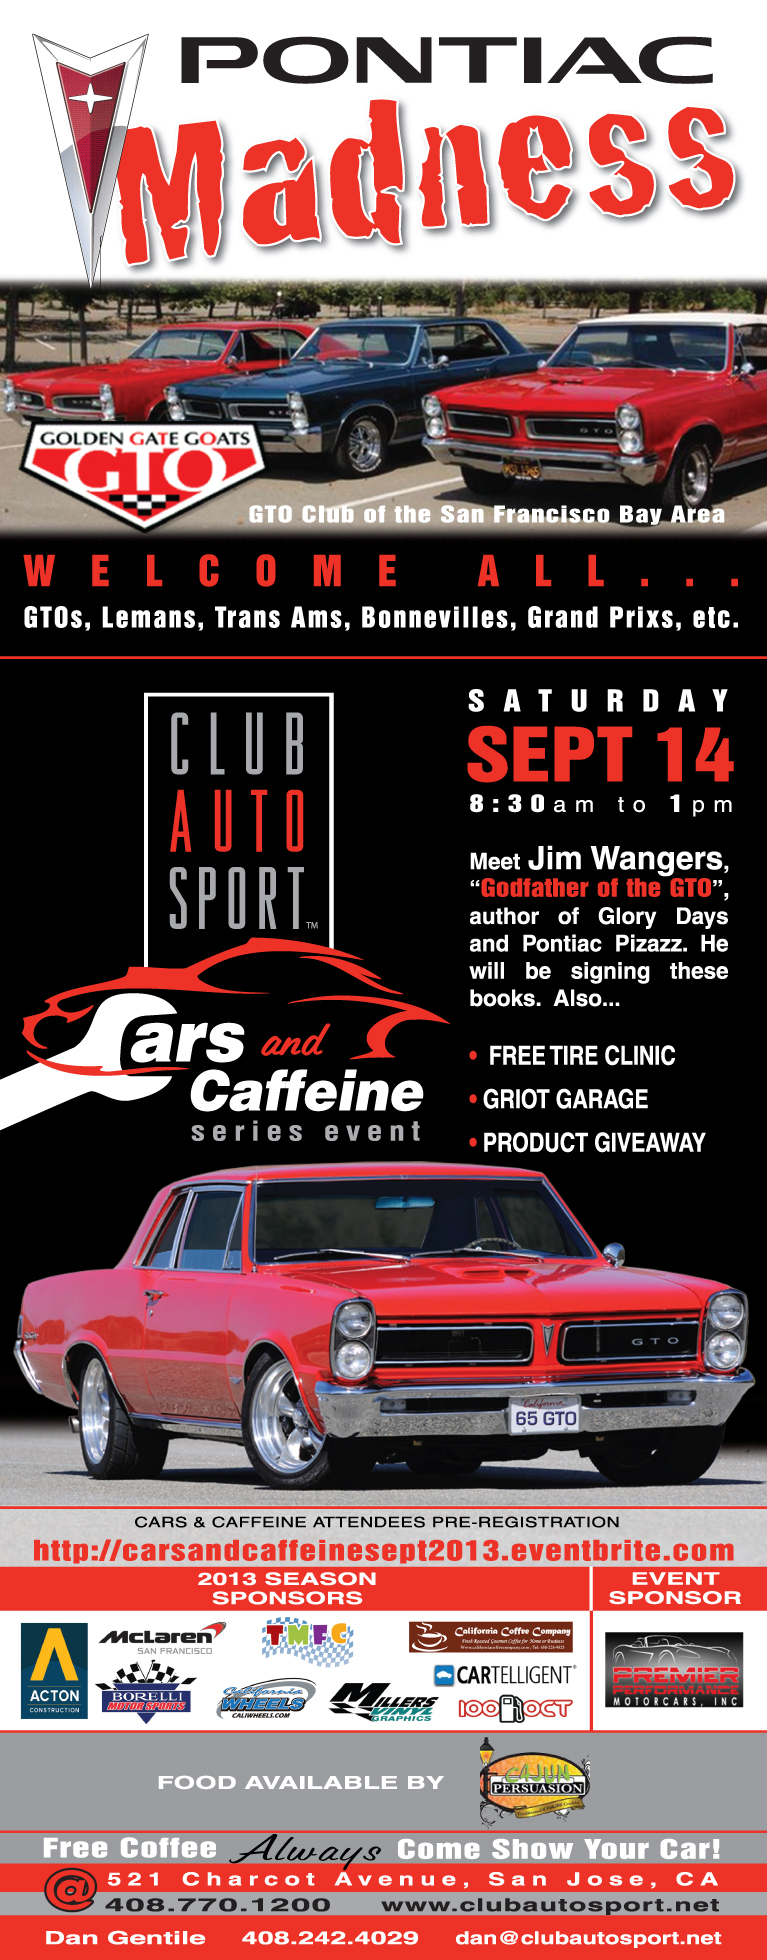 Cars & Caffeine Sept 2013